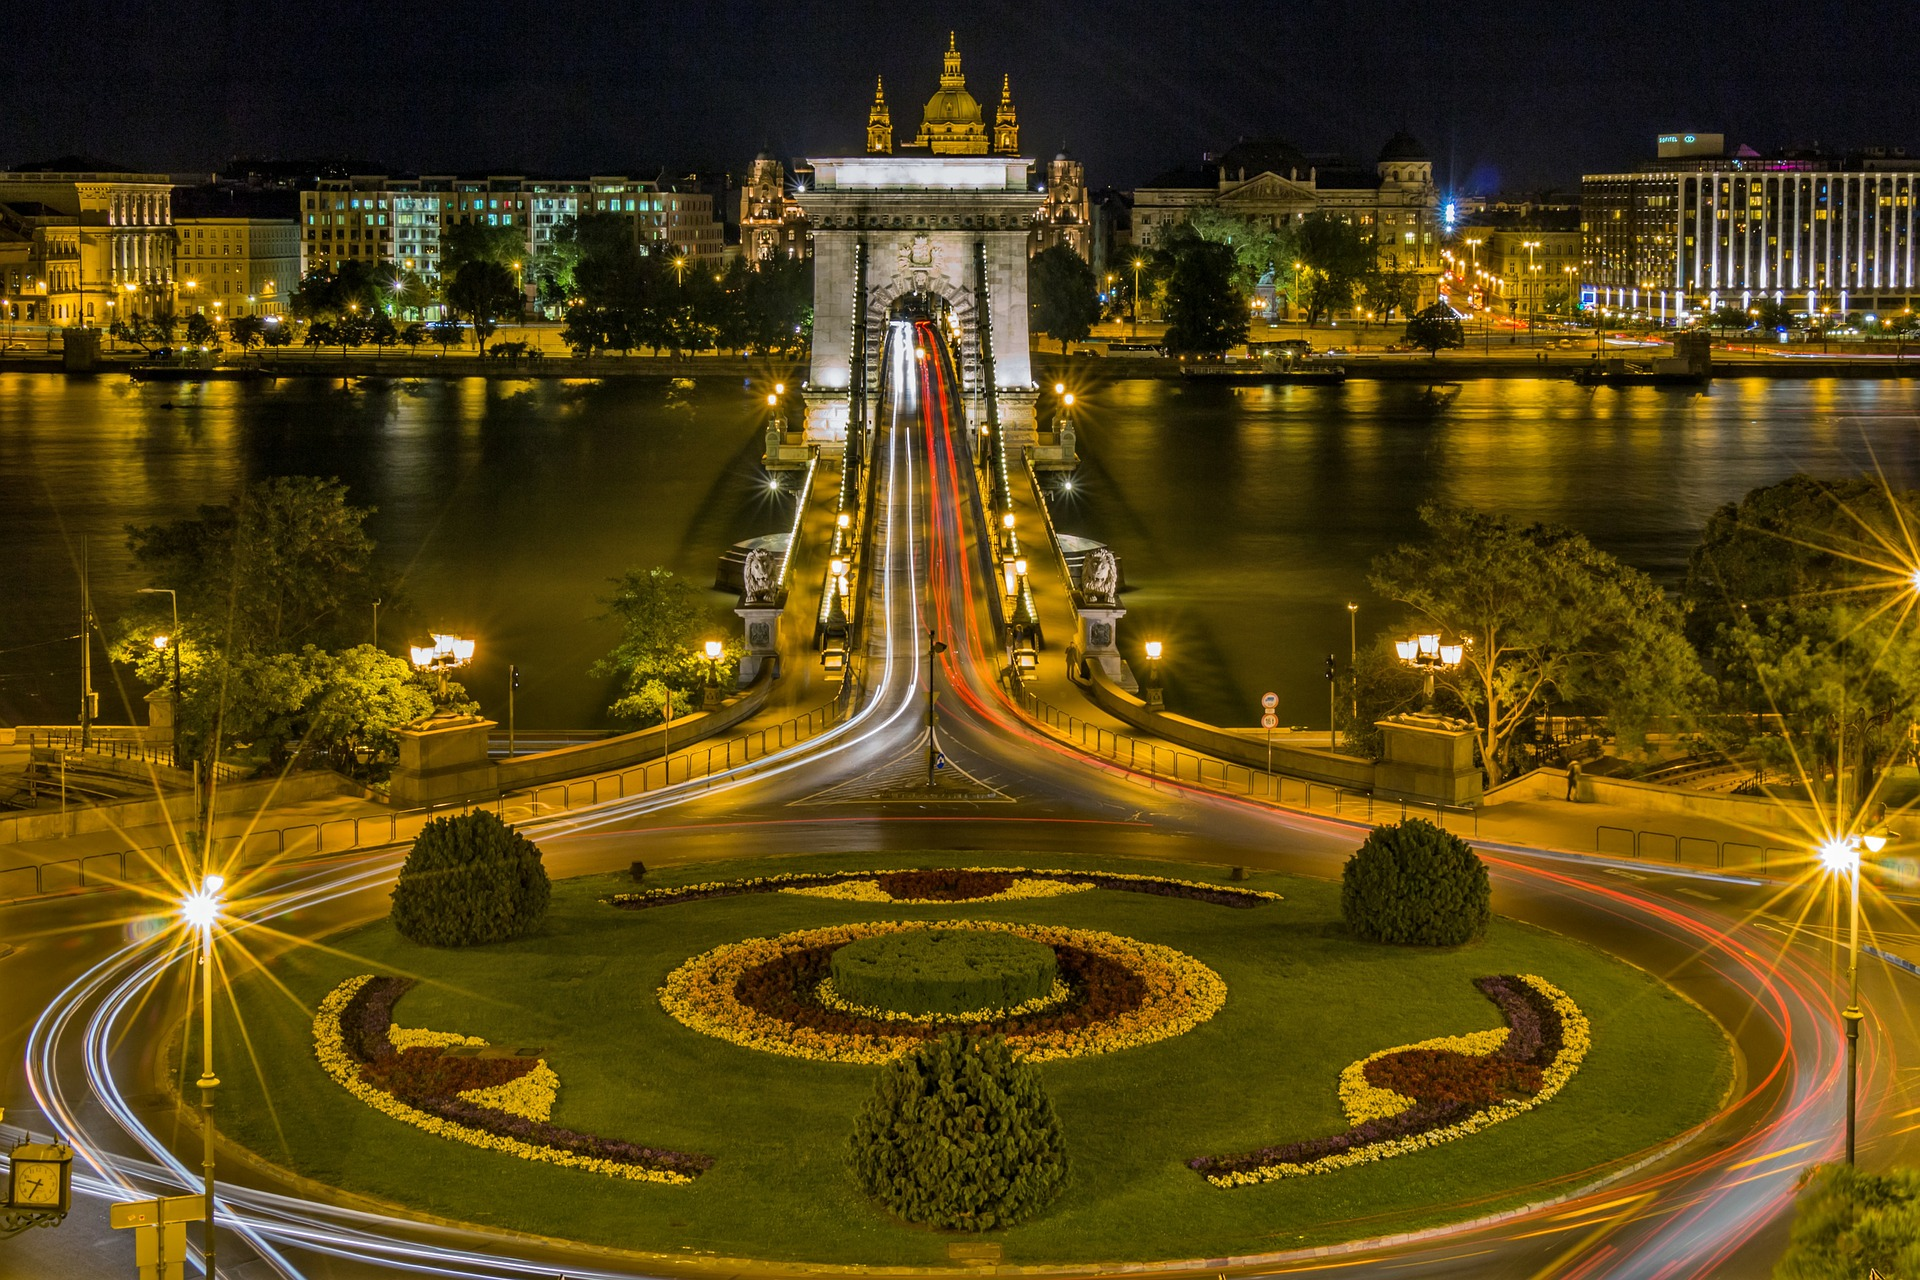 The Chain Bridge over the River Danube, Budapest, Hungary